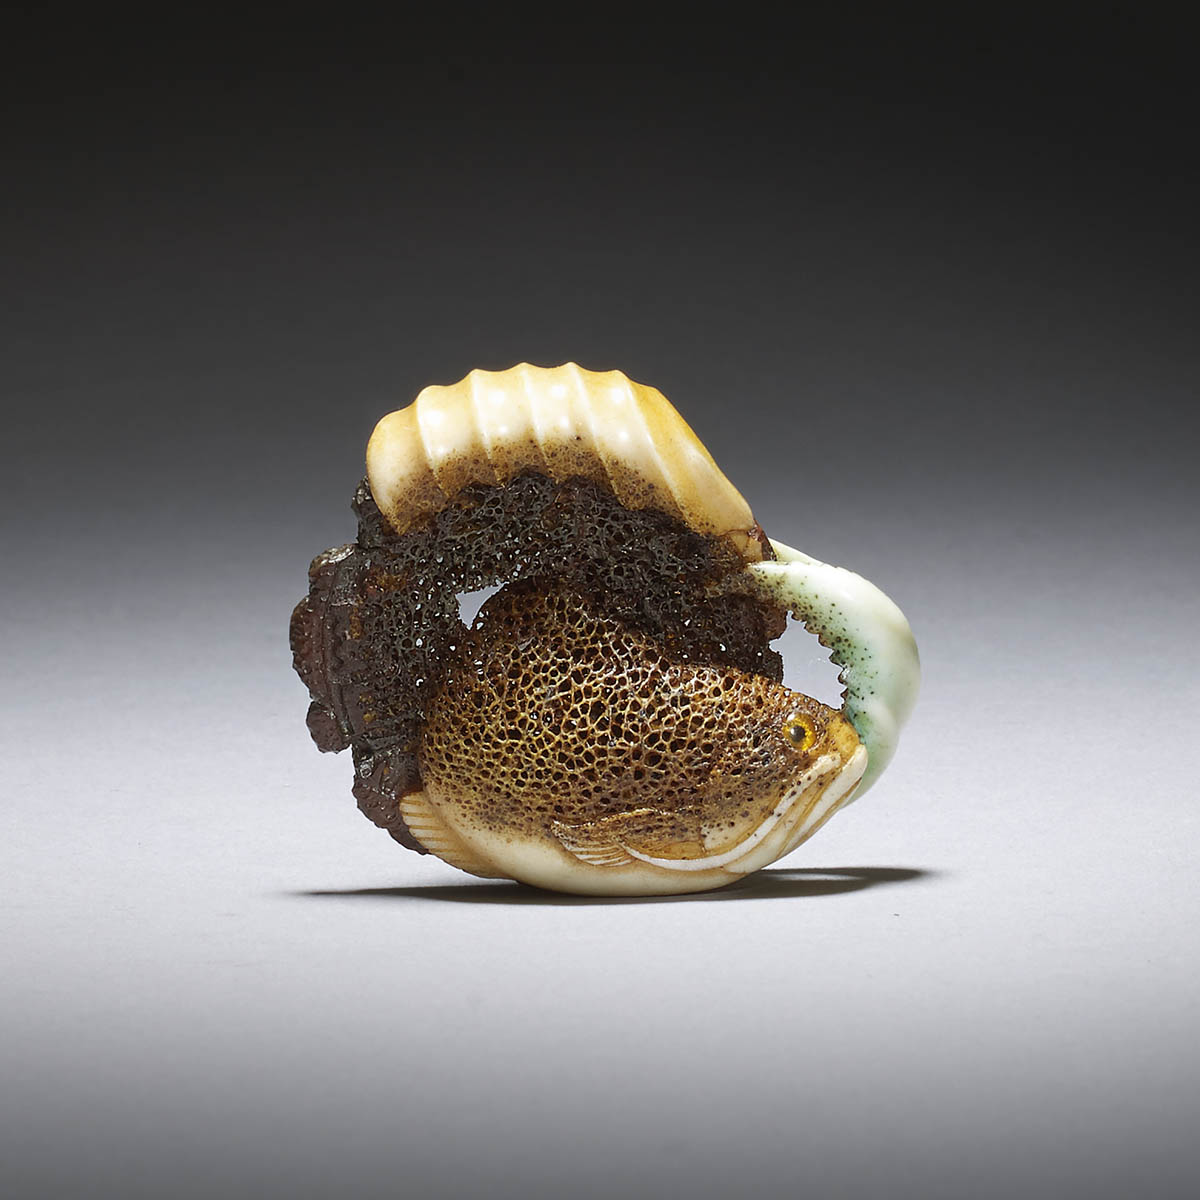 uy Shaw, Stag antler netsuke of a fish in lucite case